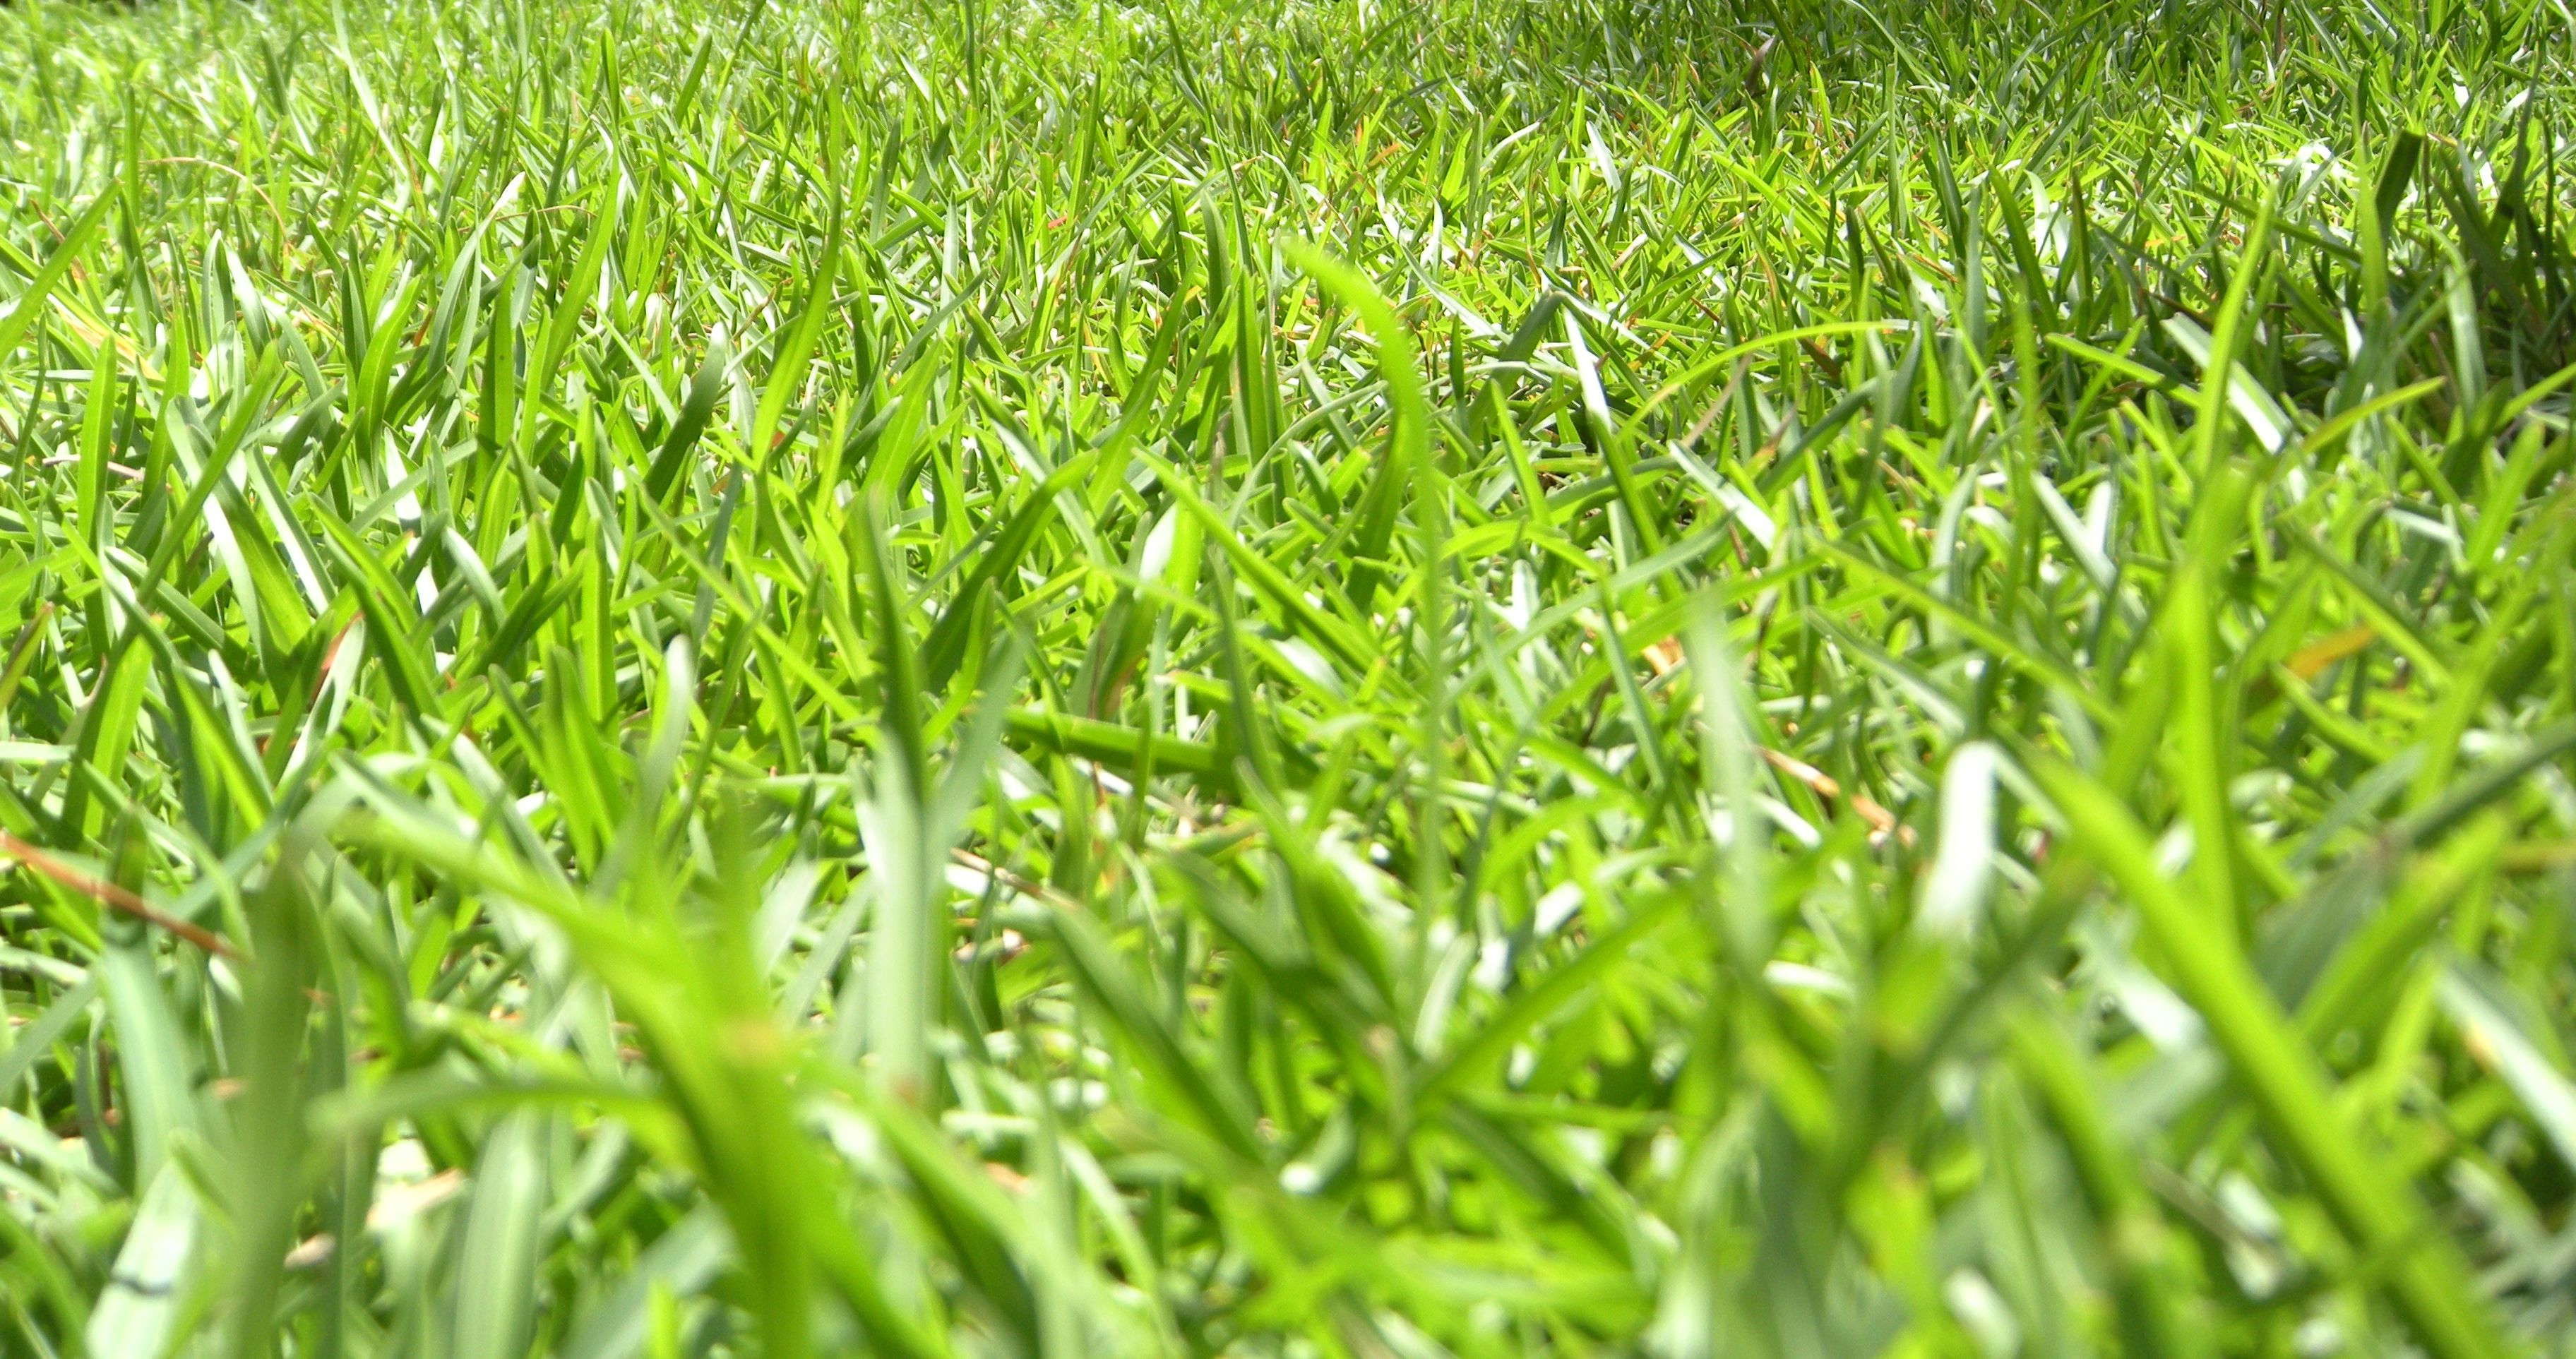 Lush and Green! Fertilizing, Dethatching and Aerating Available.